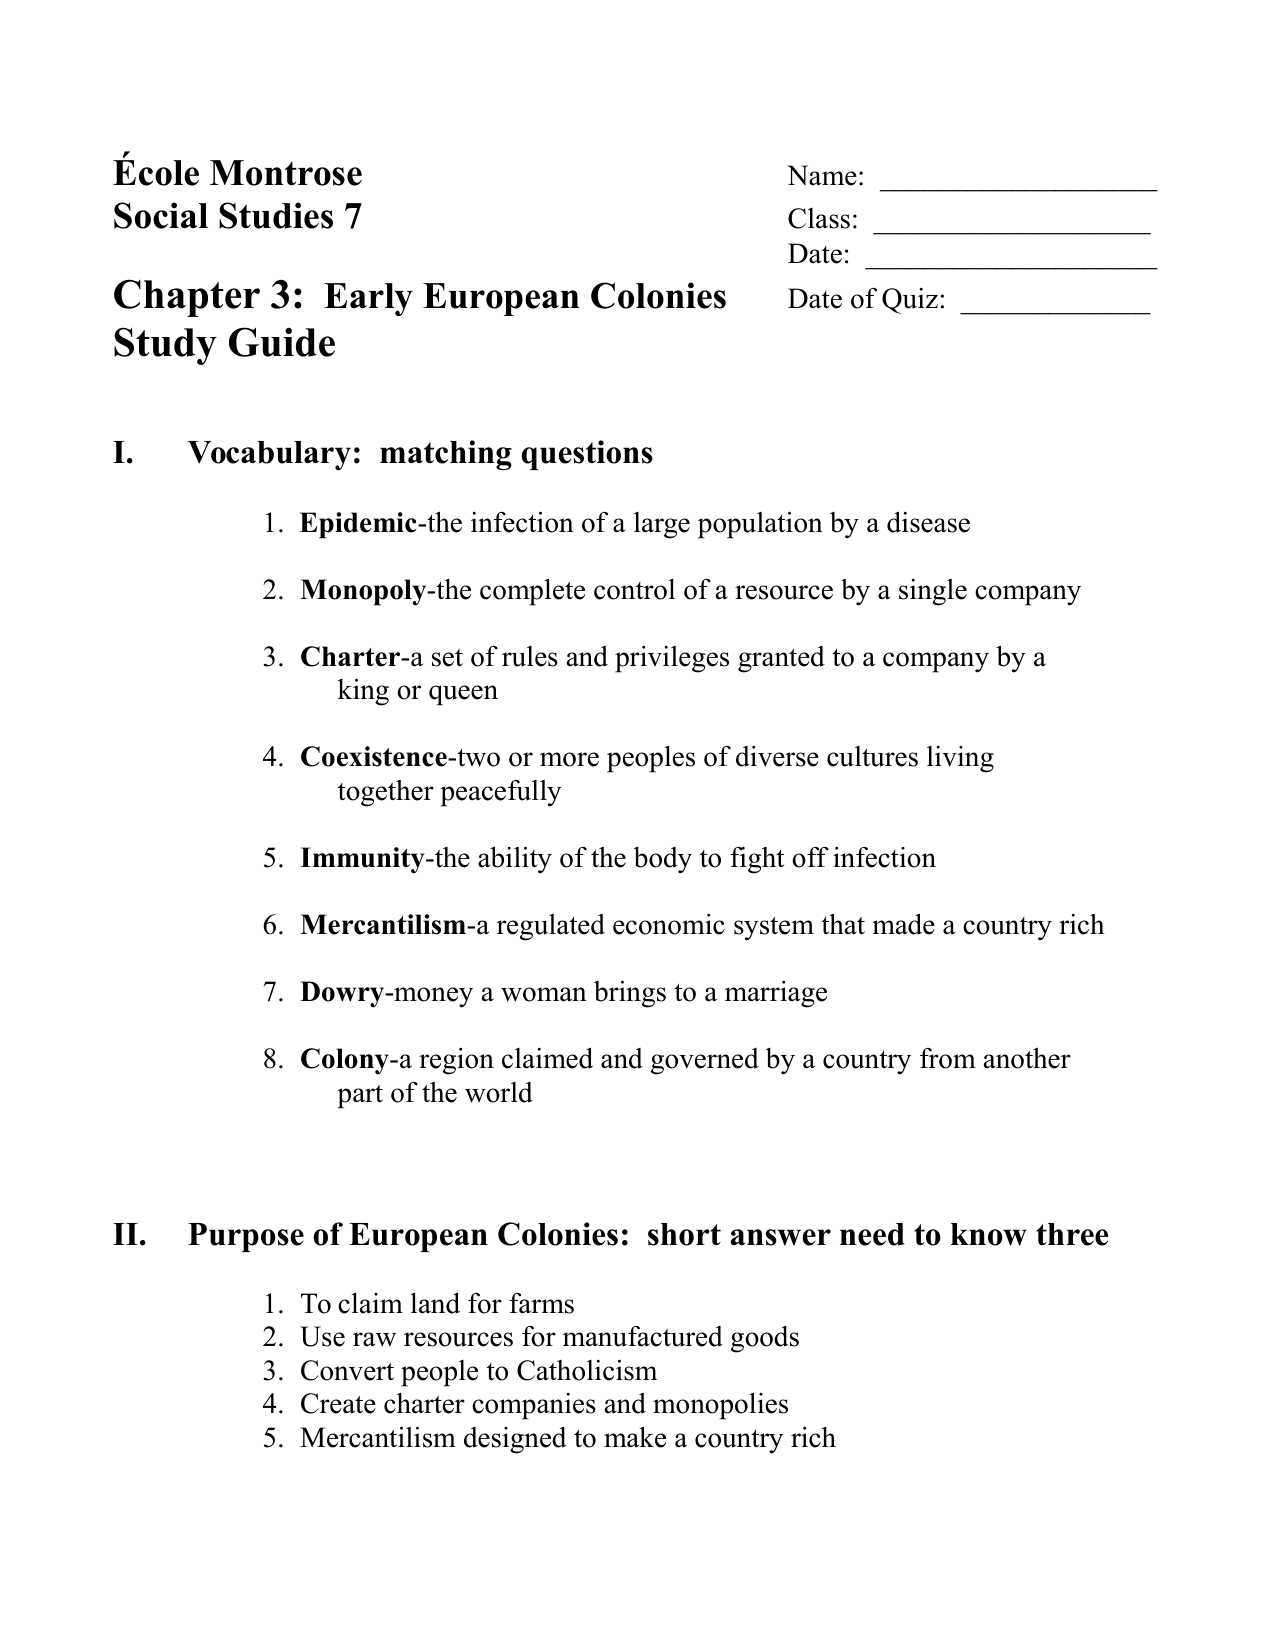 Chapter 2 Economic Systems Worksheet Answers